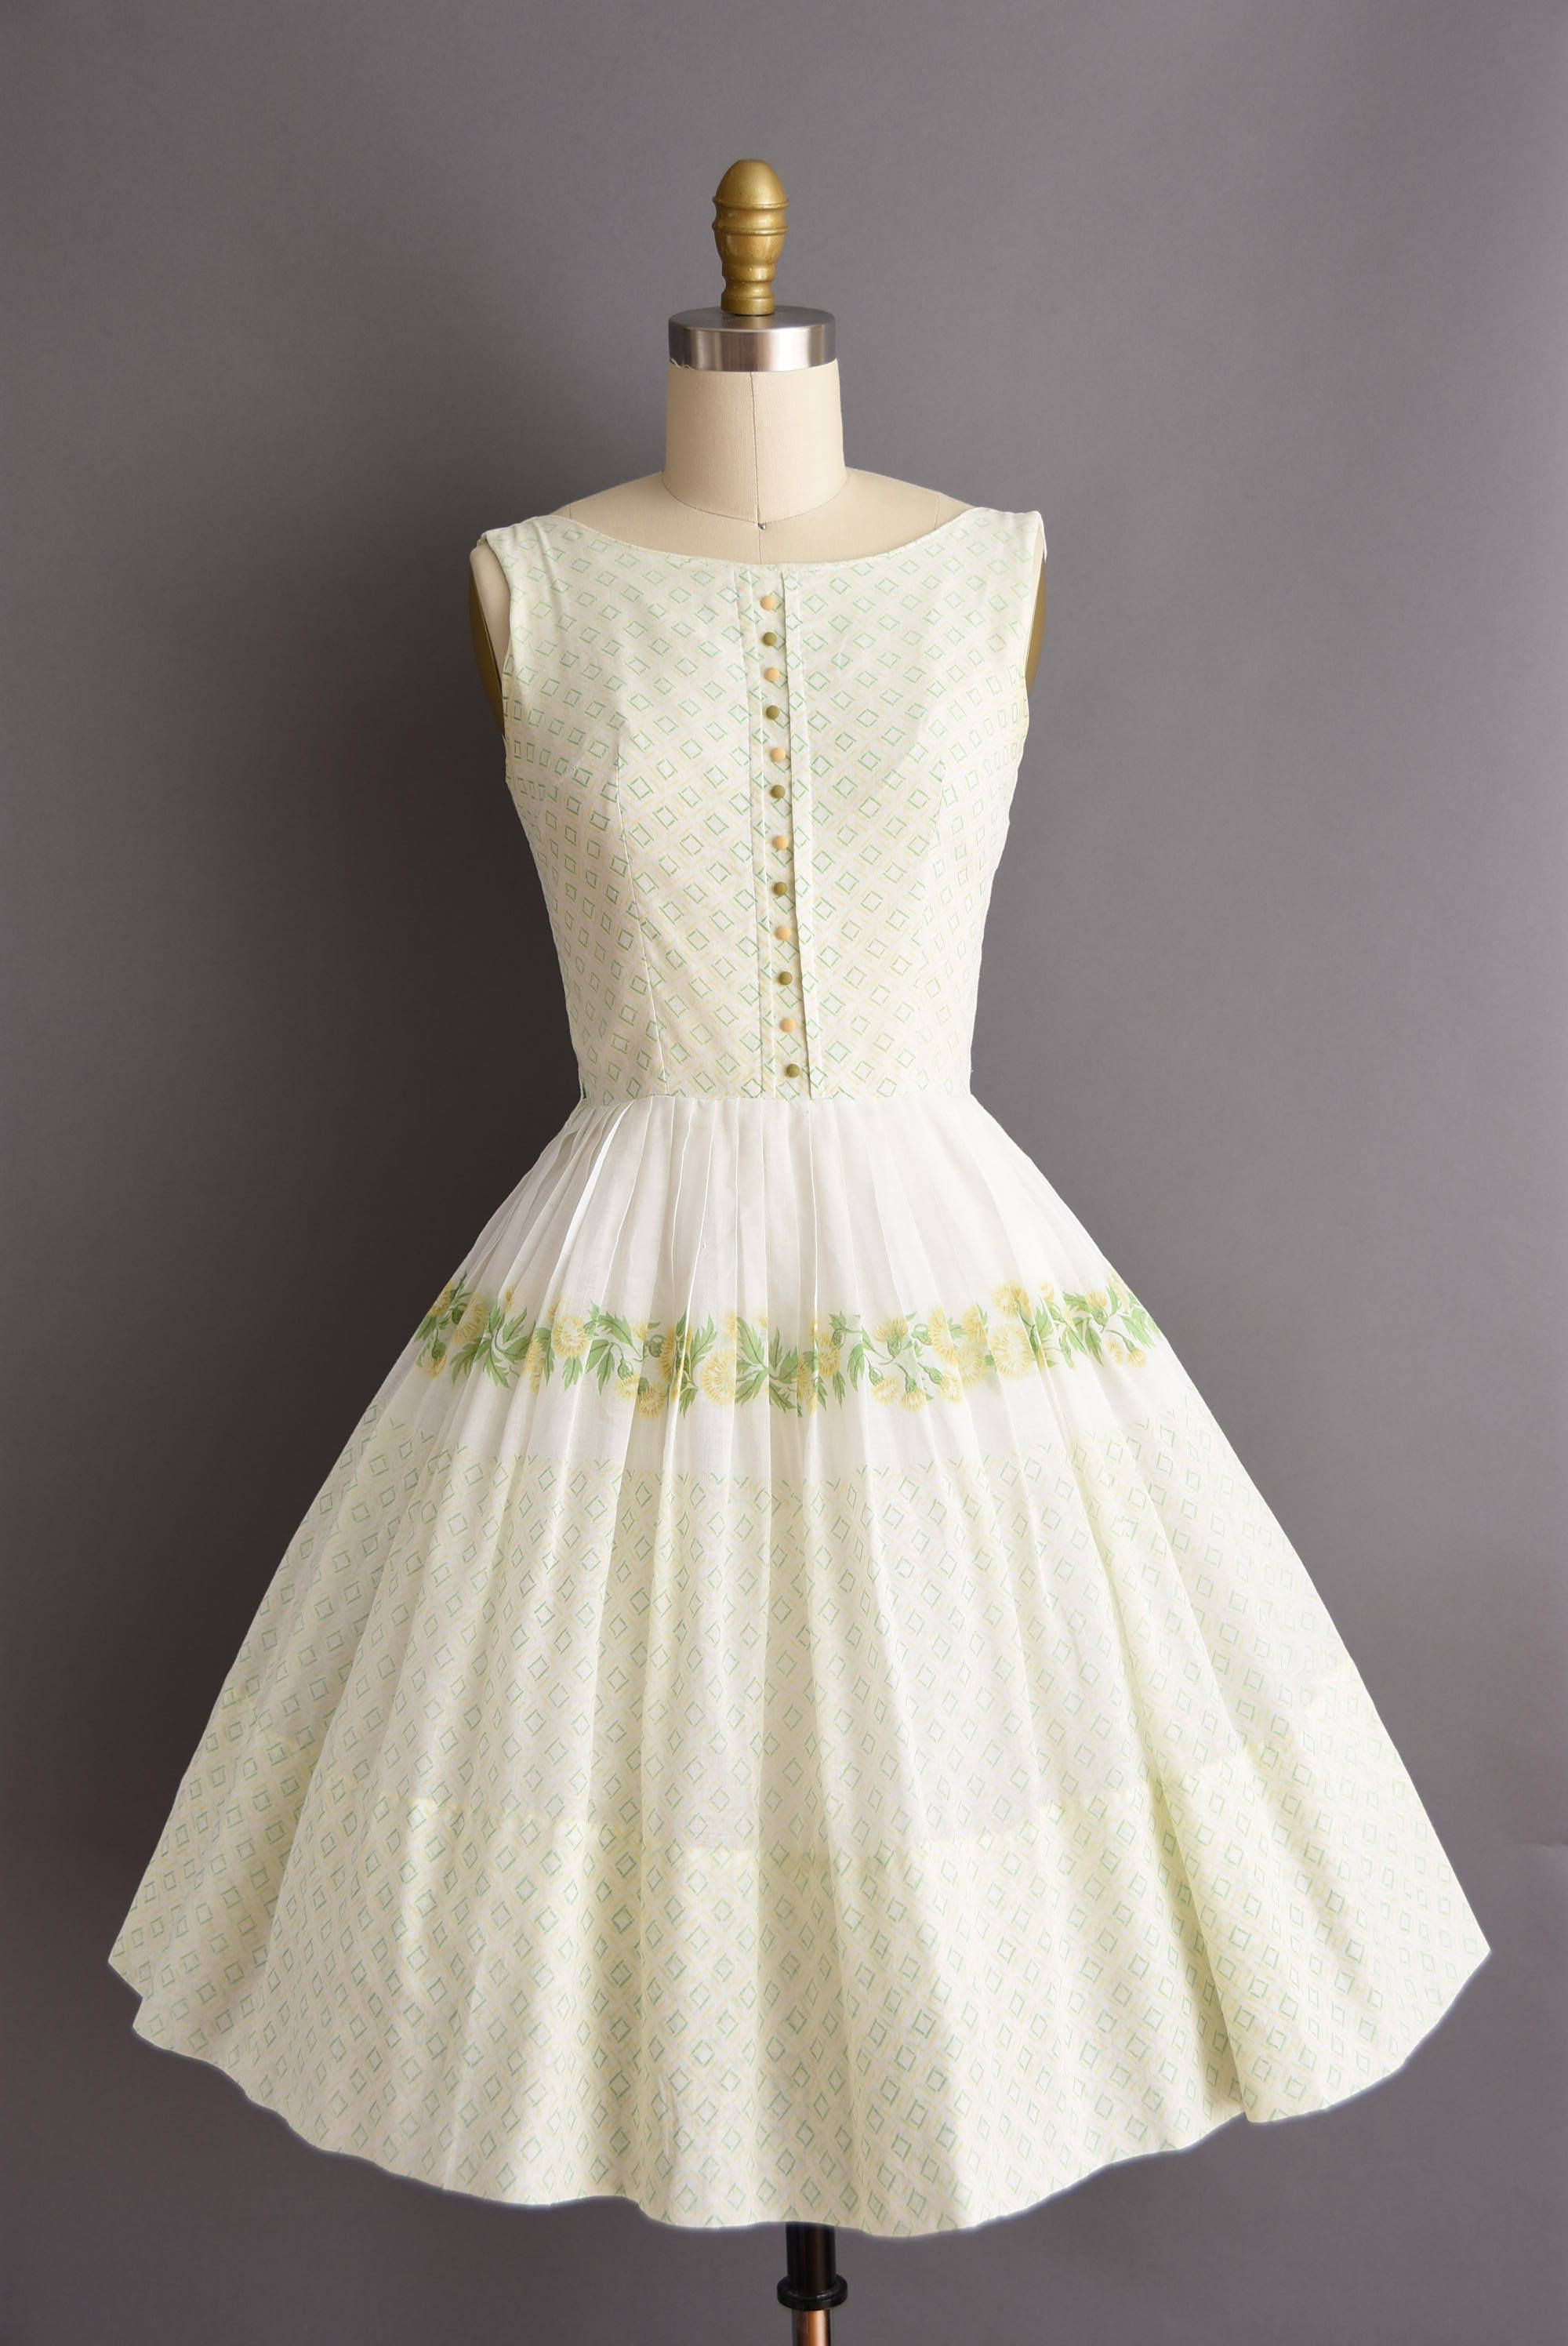 Best wedding dresses for full bust  vintage s white cotton green and yellow floral print sun dress